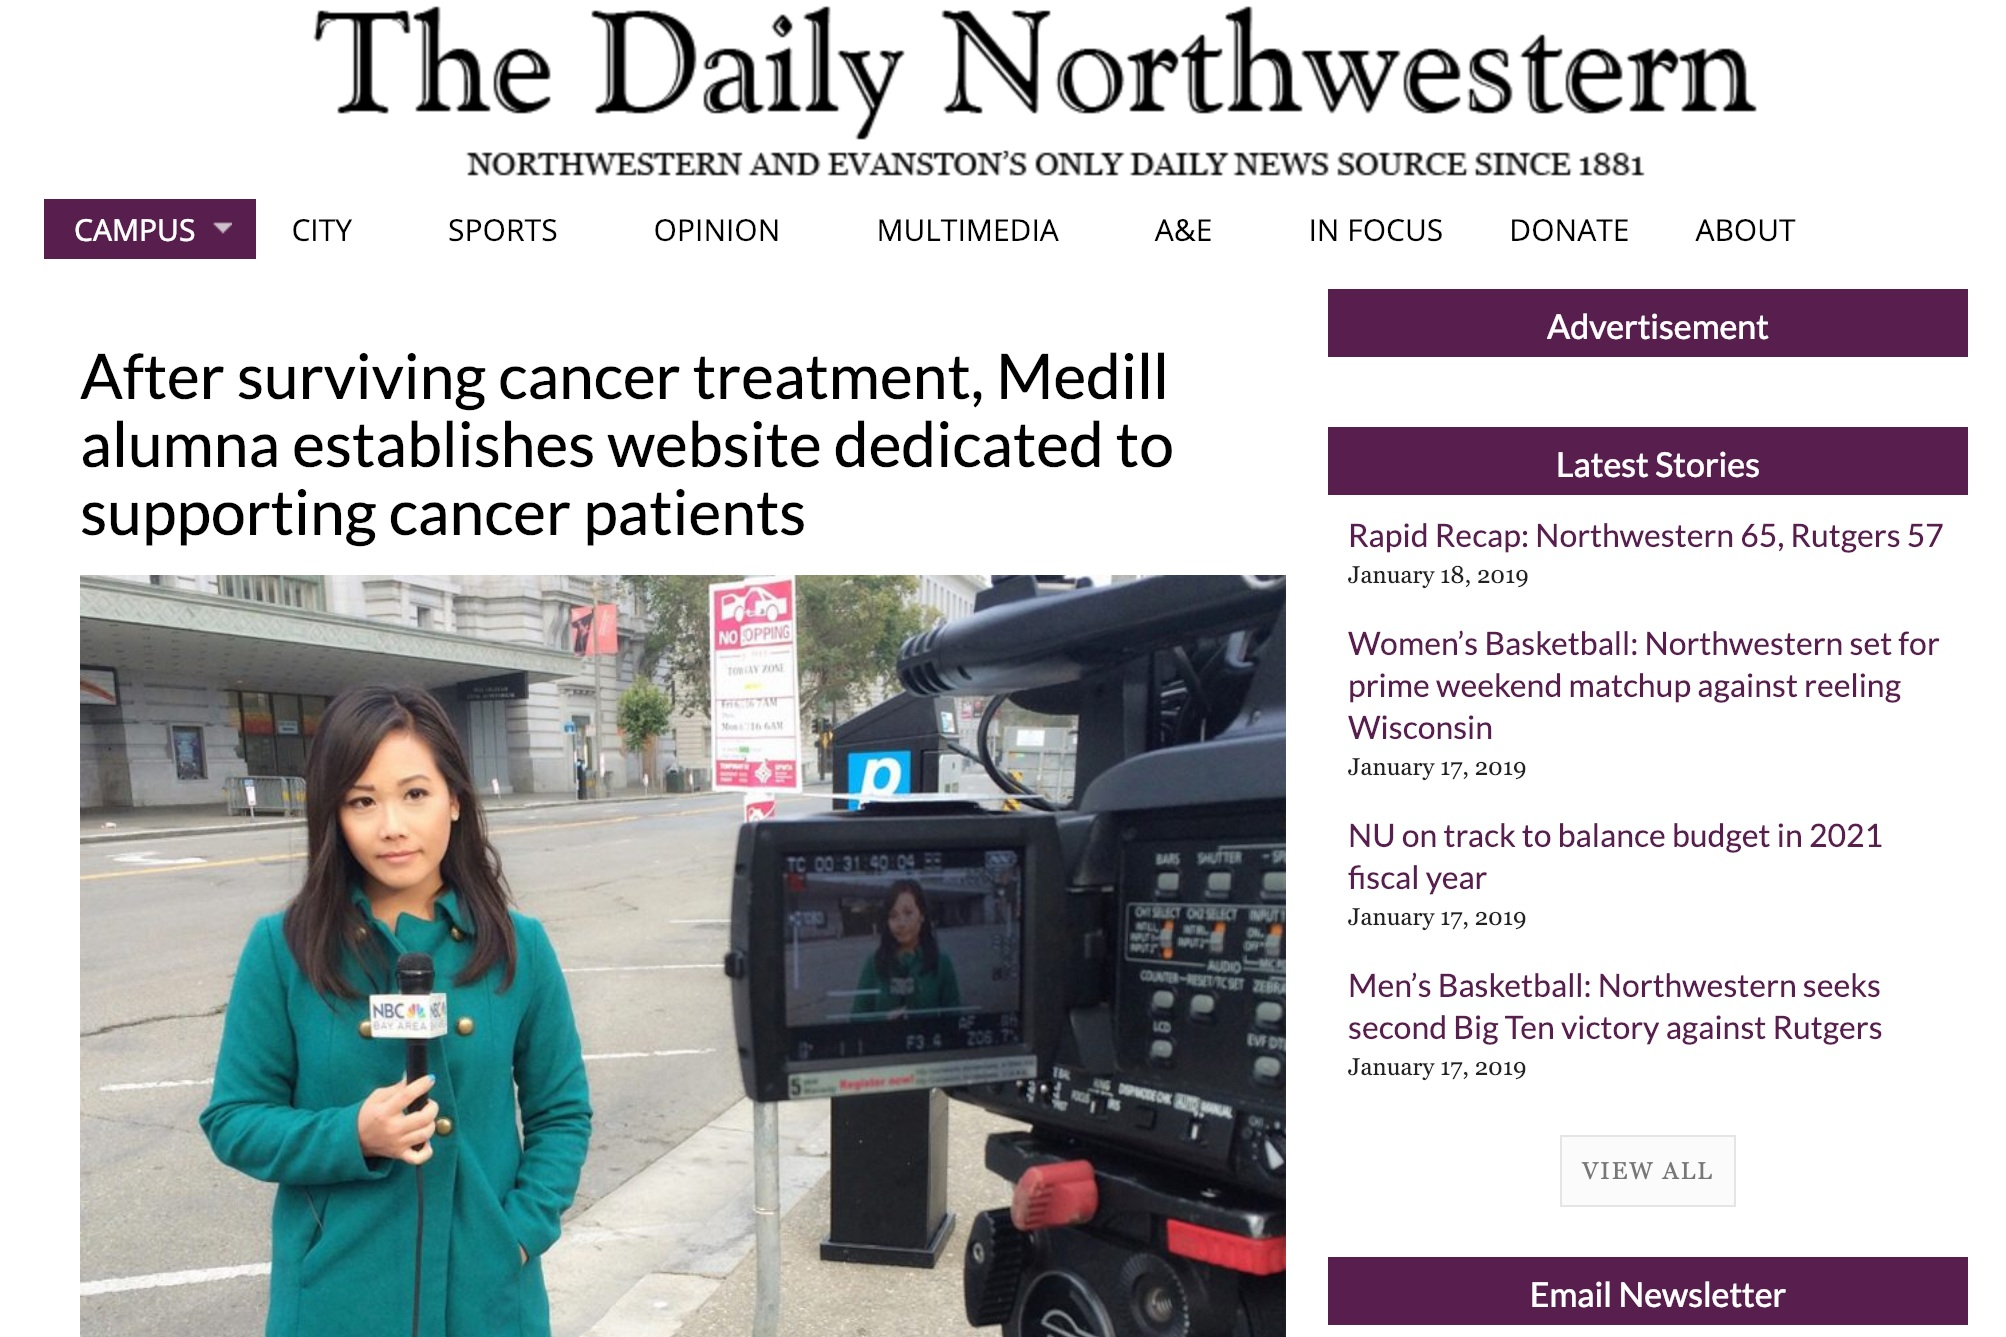 The Daily Northwestern - January 17, 2019The Daily NU reporter covers the genesis and the work of The Patient Story.